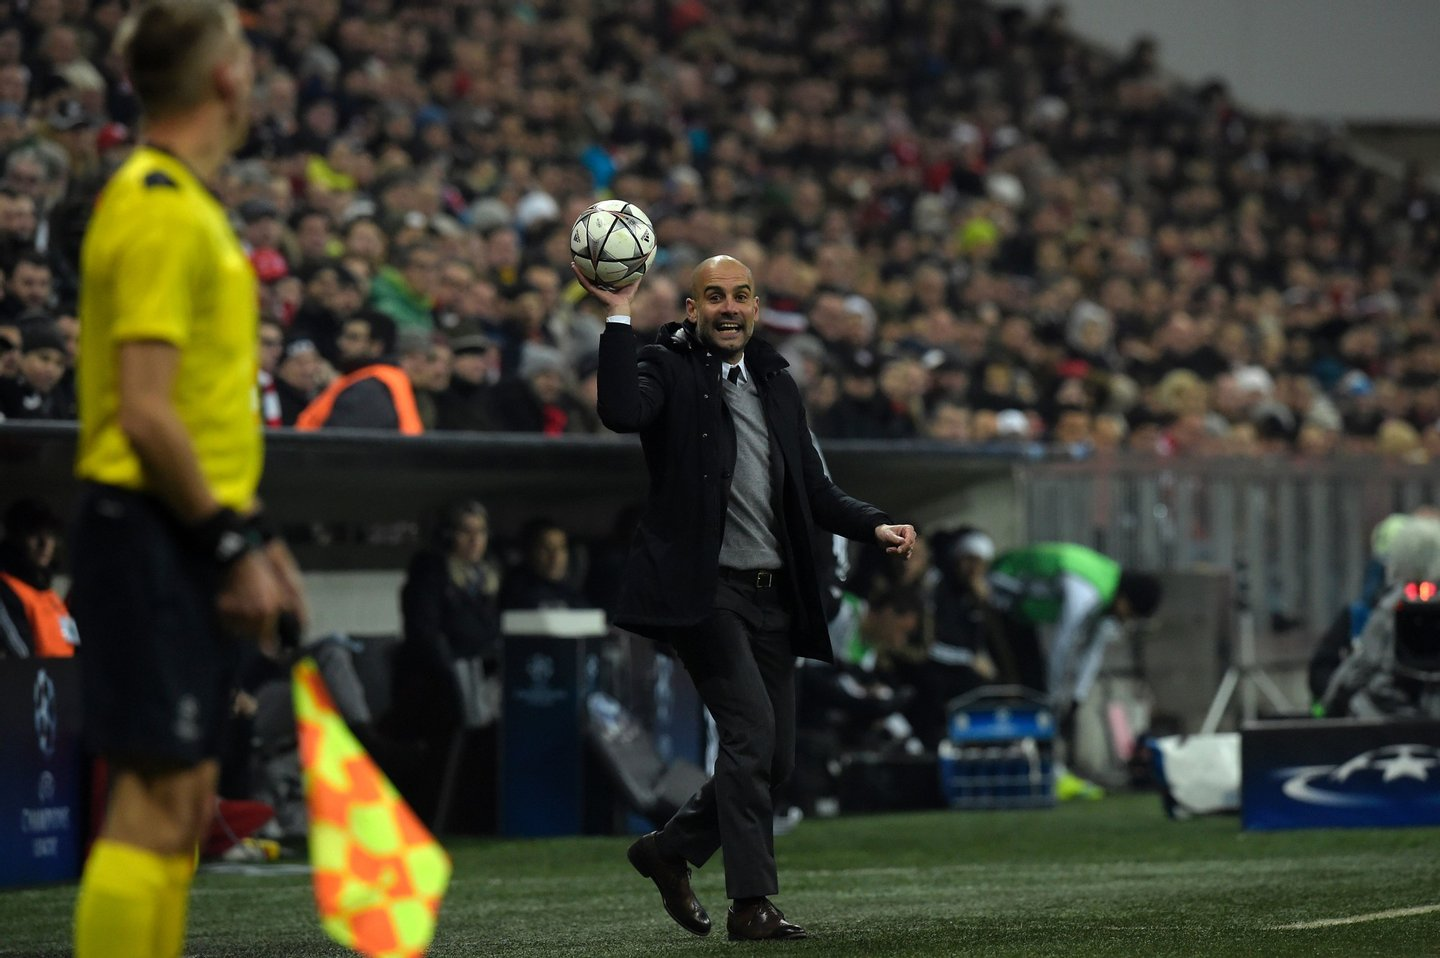 Bayern Munich's Spanish head coach Pep Guardiola throws the ball during the UEFA Champions League, Round of 16, second leg football match FC Bayern Munich v Juventus in Munich, southern Germany on March 16, 2016. / AFP / TOBIAS SCHWARZ (Photo credit should read TOBIAS SCHWARZ/AFP/Getty Images)